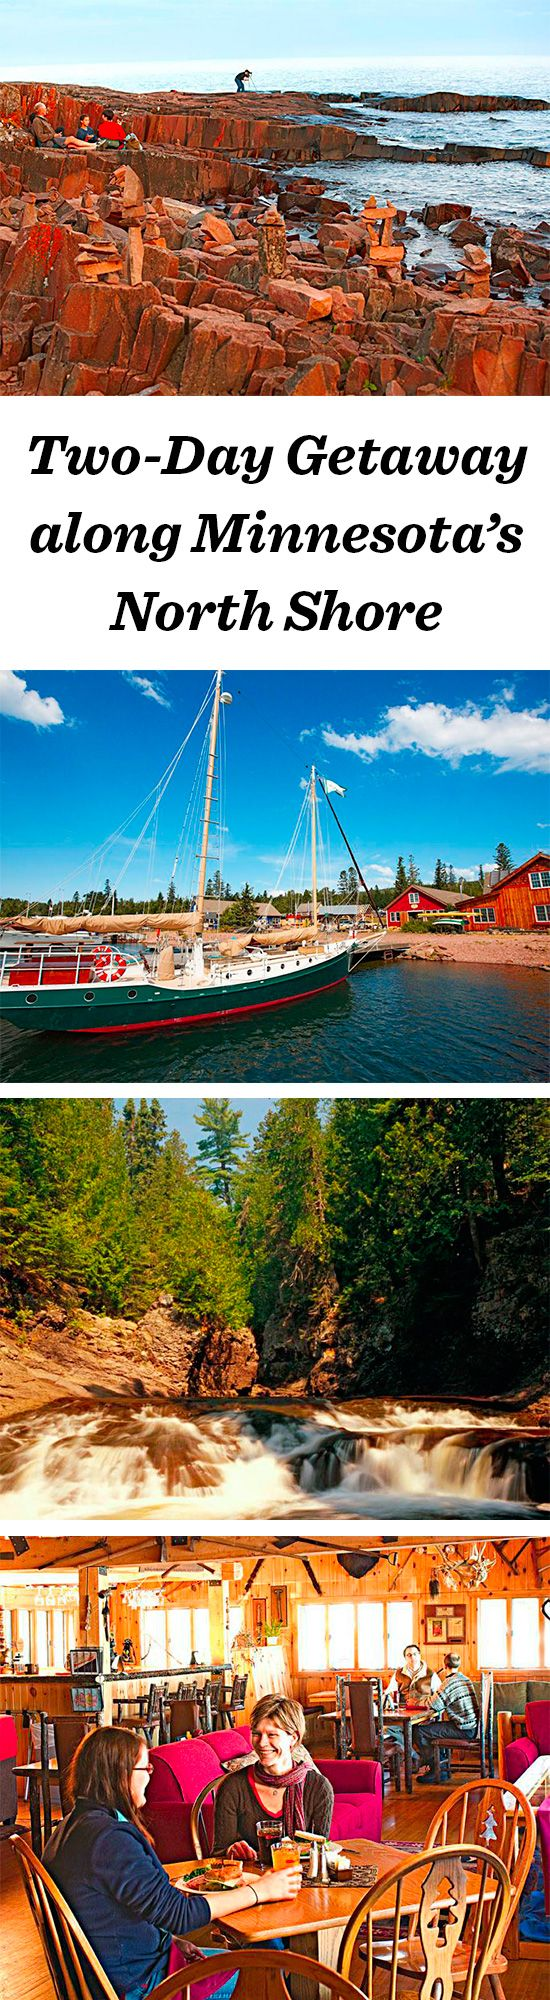 From Tofte to Grand Marais, explore state parks and pause in a one-stoplight county known for great dining: http://www.midwestliving.com/travel/minnesota/north-shore/two-day-getaway-along-minnesotas-north-shore/ #minnesota #northshore #travel